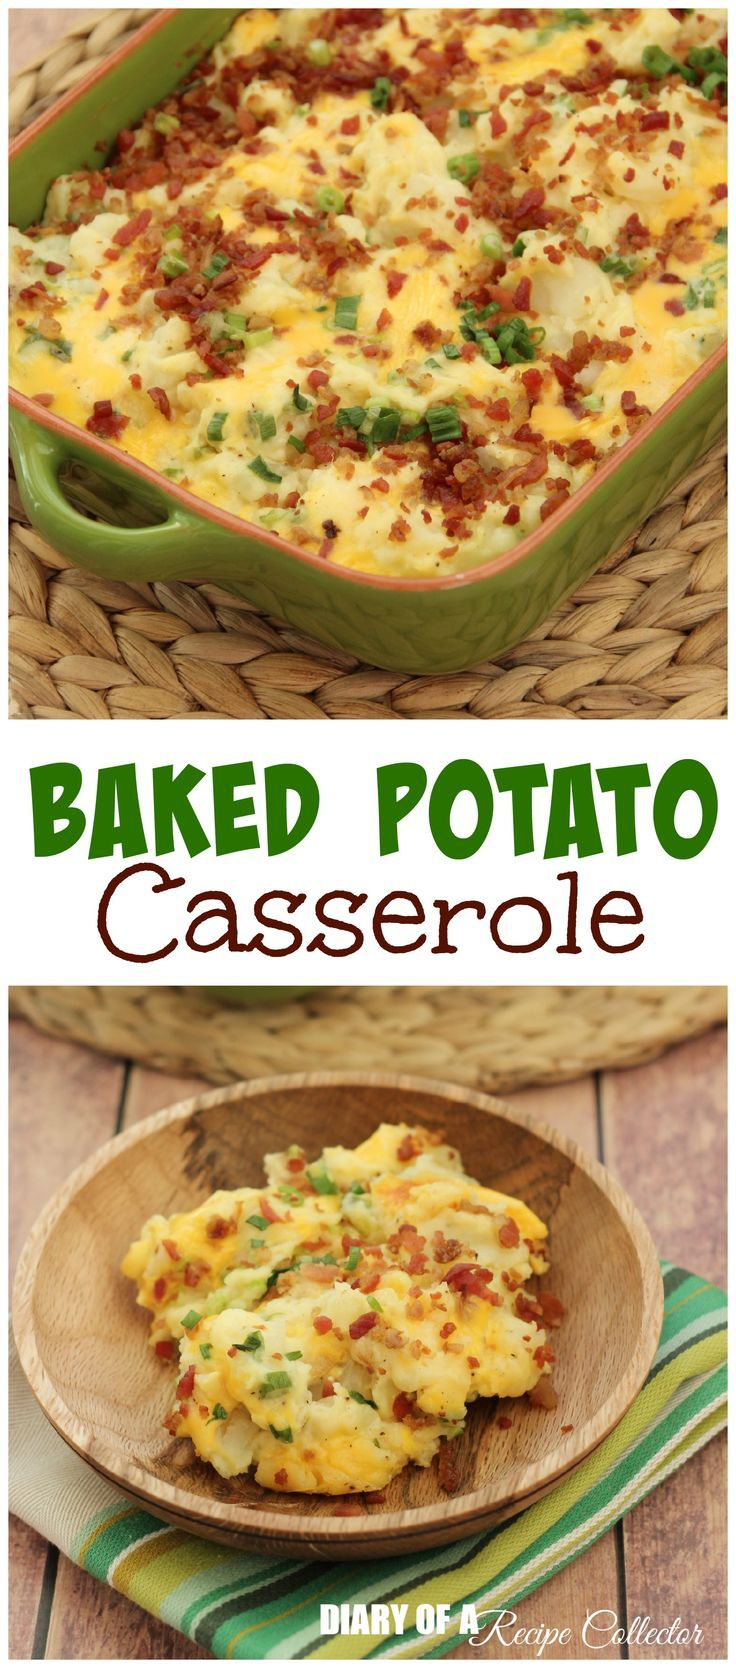 Baked Potato Casserole makes a perfect side dish to accompany any family gathering meal for the holidays or even a BBQ.